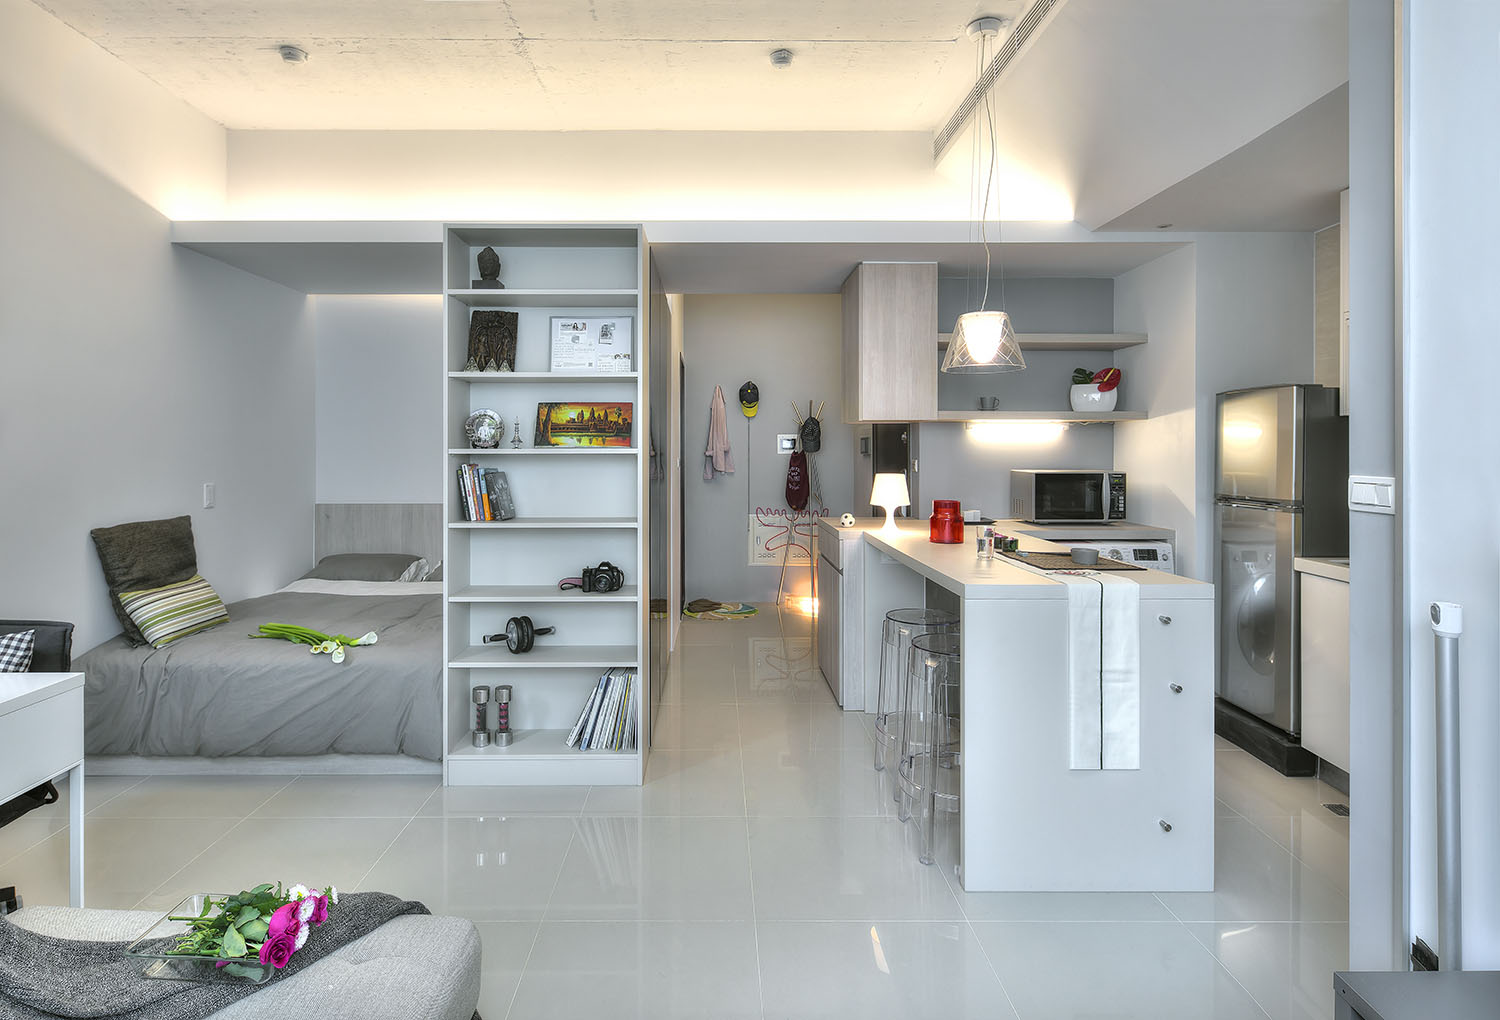 New Taipei City studio apartment (featured at iDesignArch)